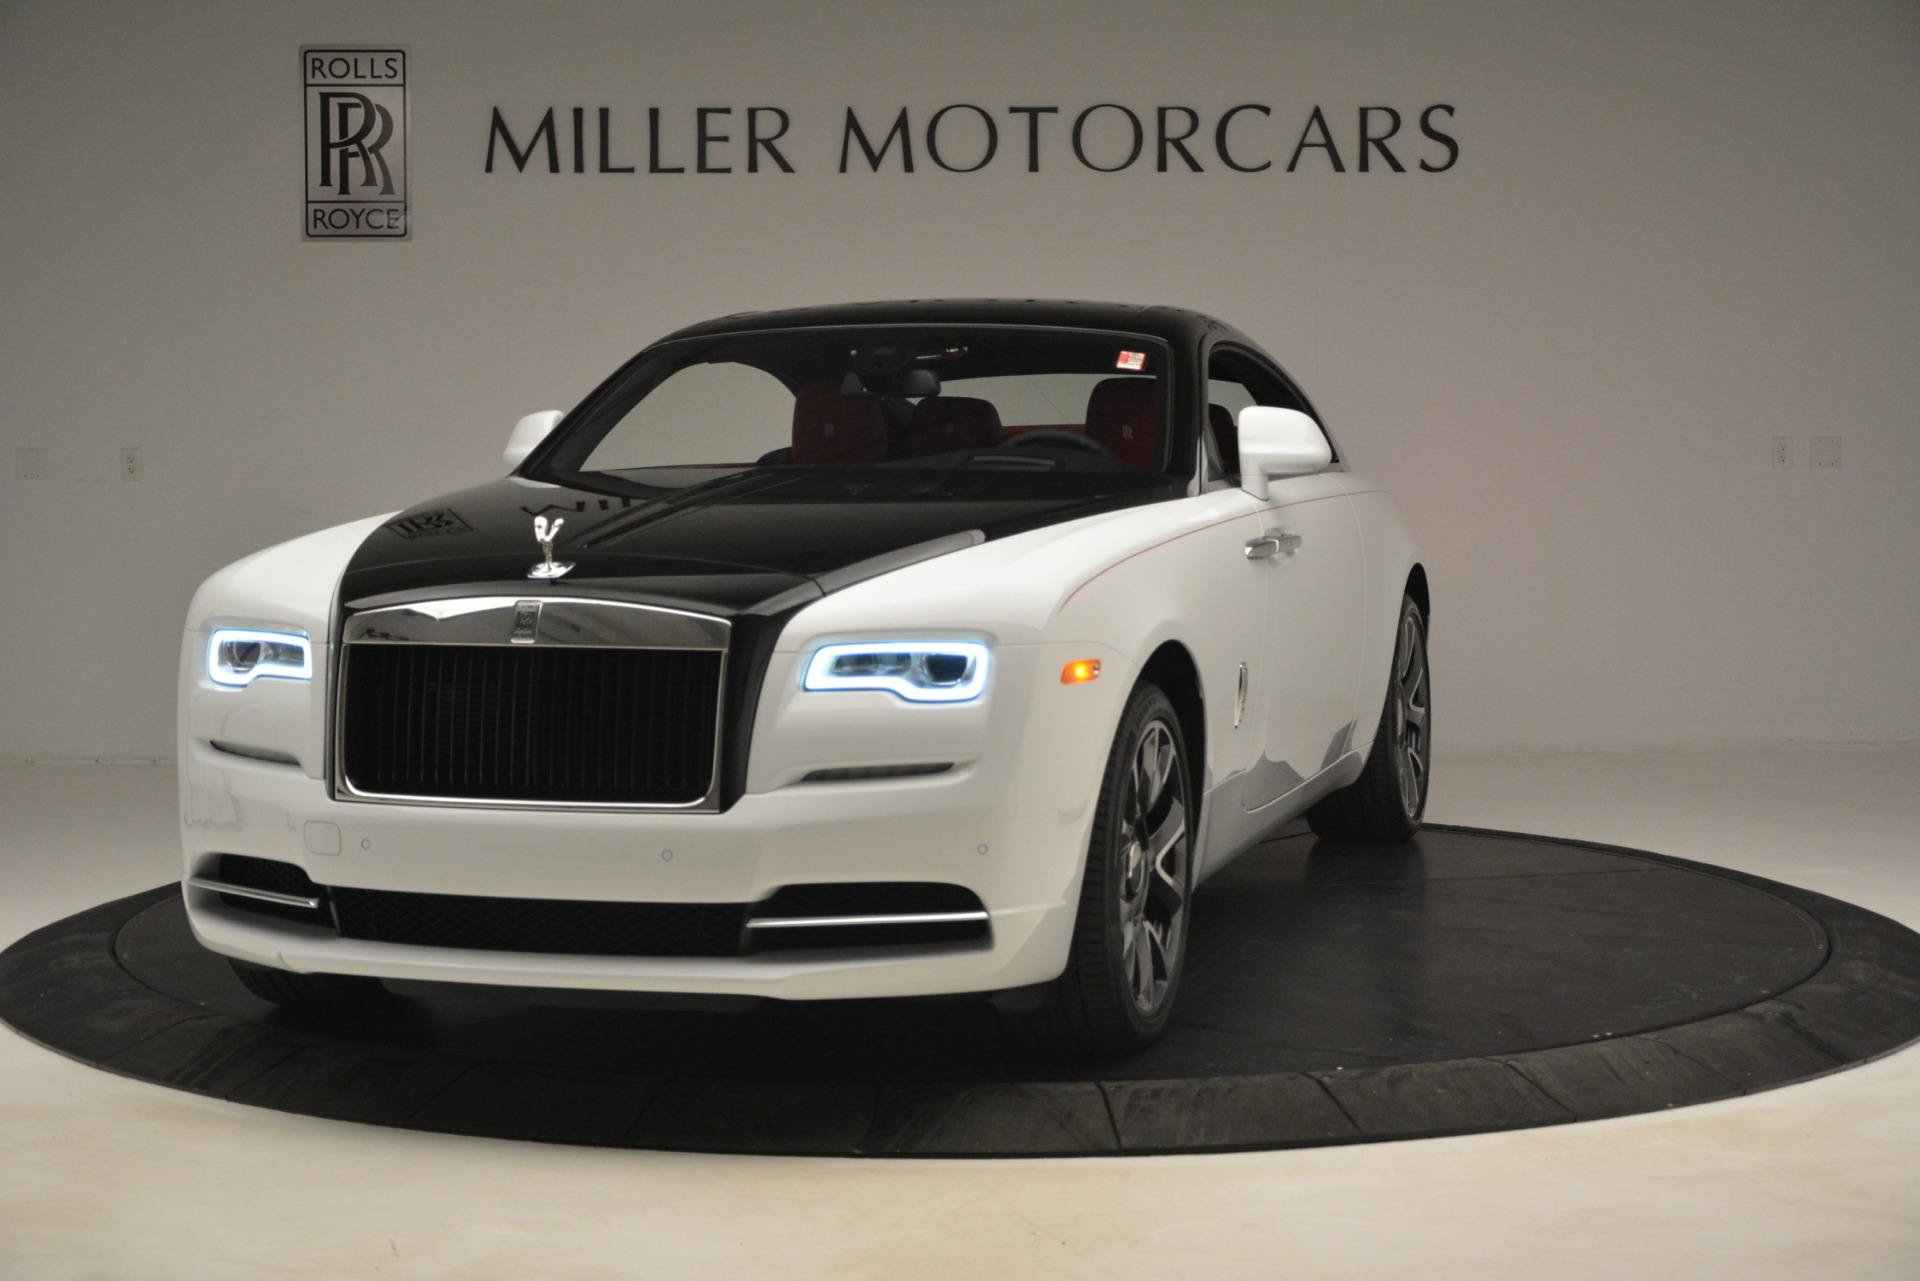 New 2019 Rolls-Royce Wraith  For Sale 411900 In Greenwich, CT